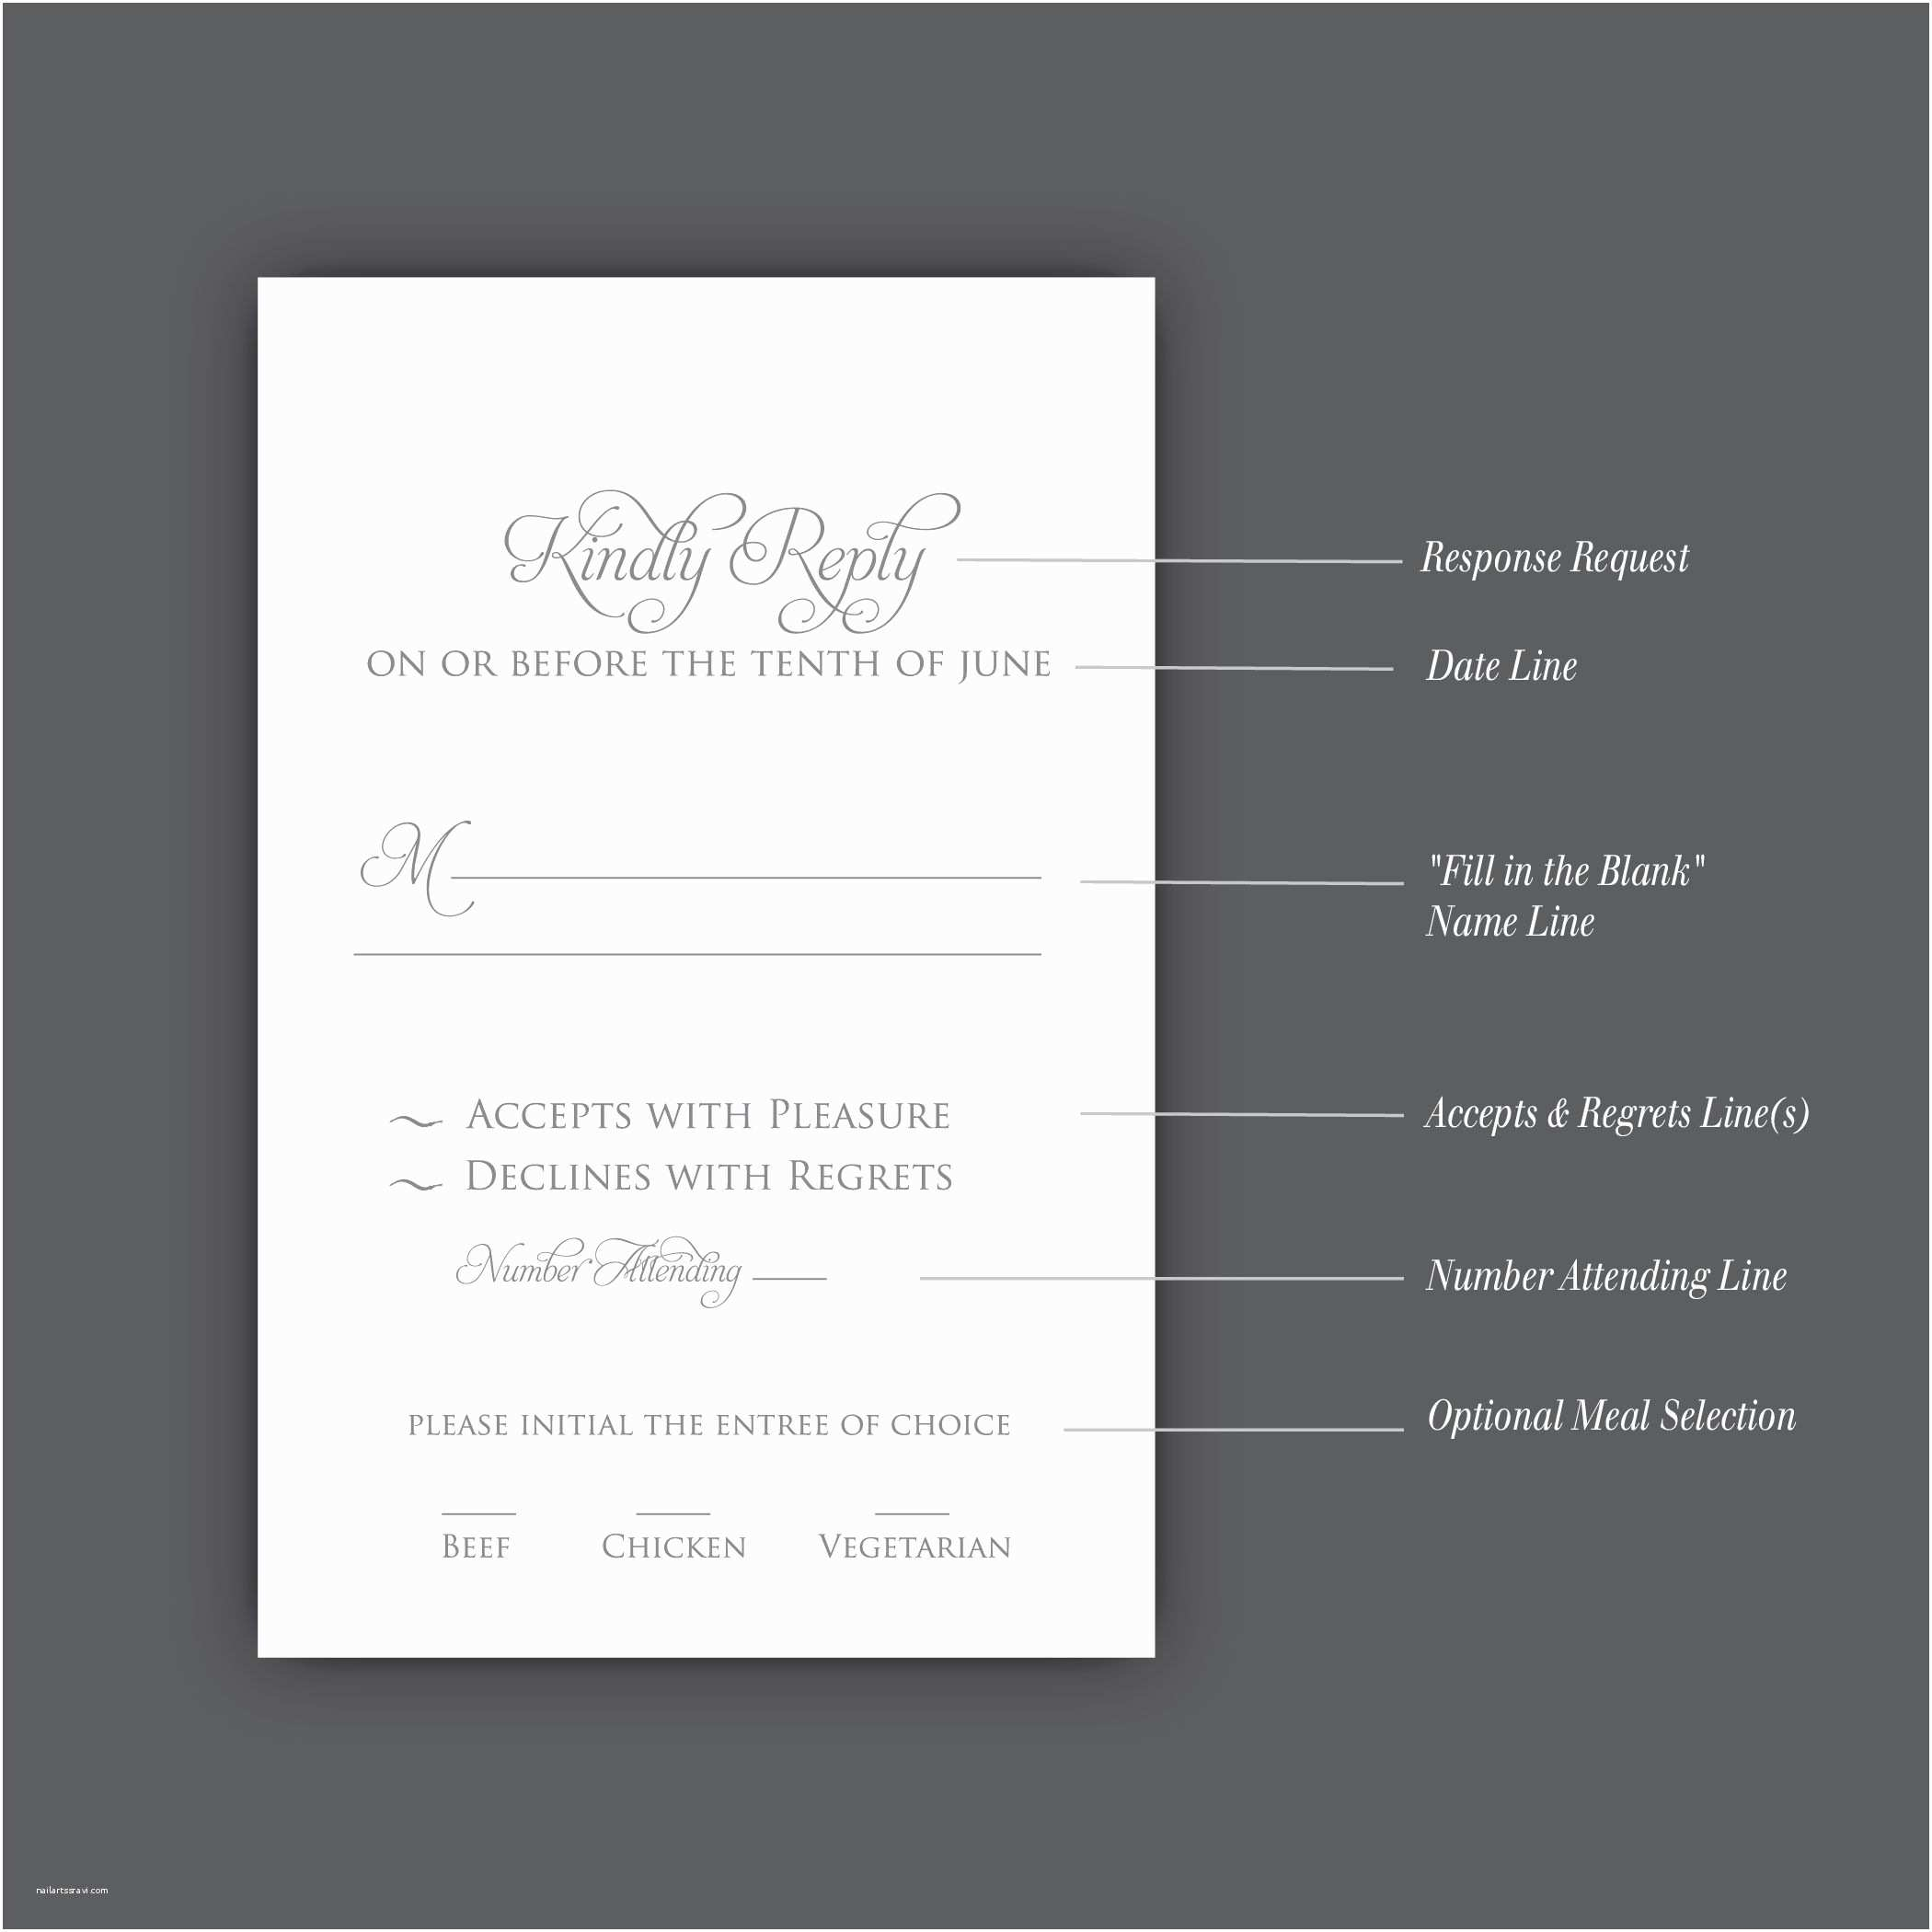 Wedding Invitations With Rsvp And Reception S How To Correctly Word Your Wedding Rsvp